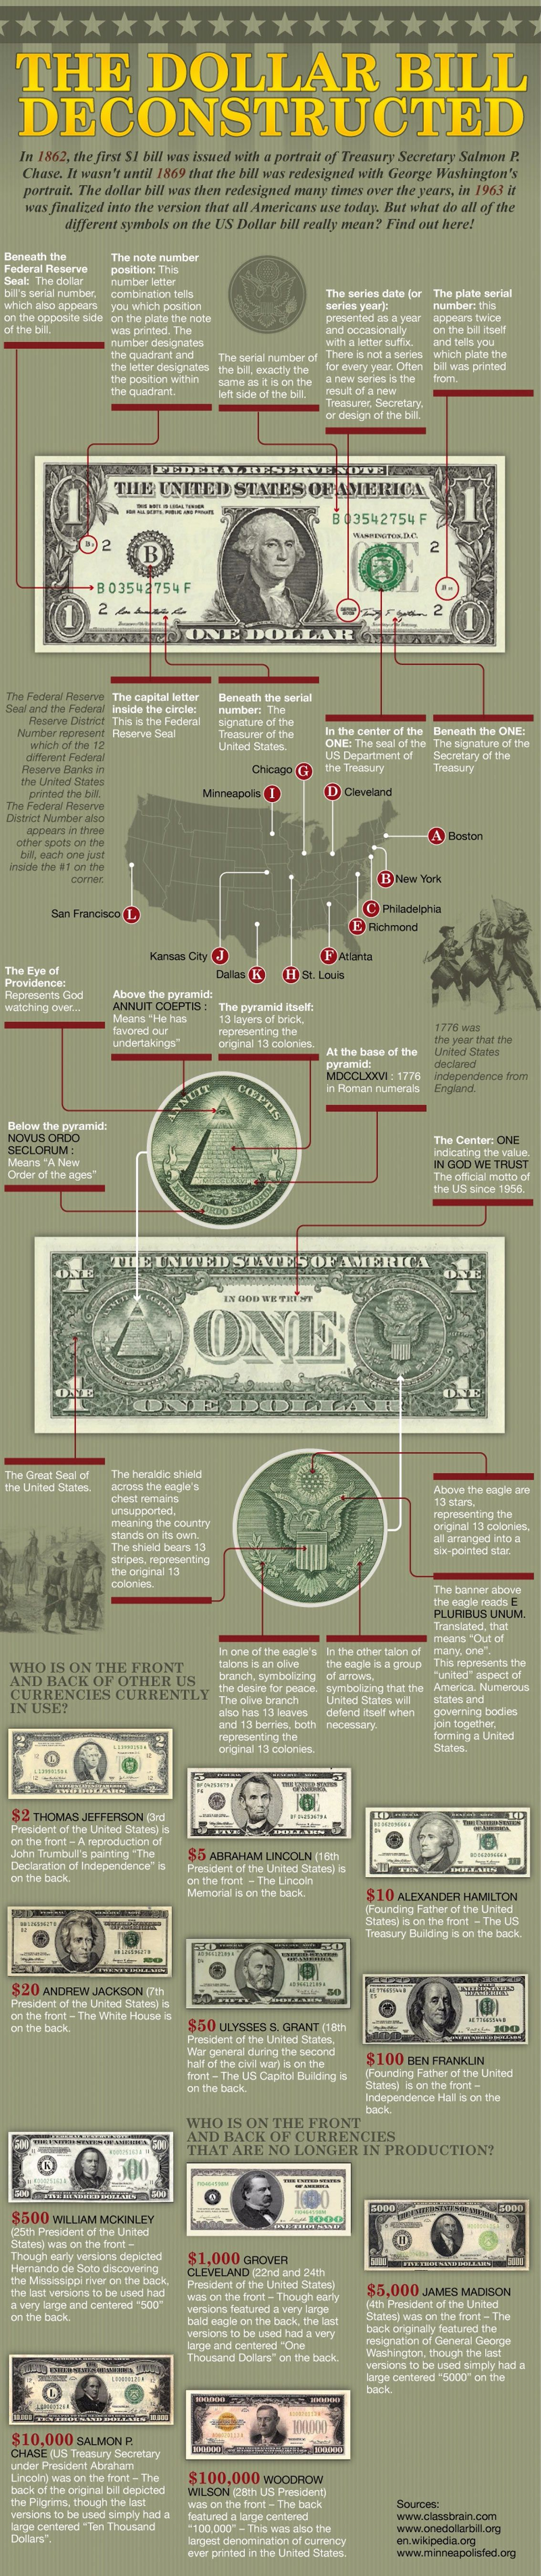 Symbols On The One Dollar Bill And What They Mean Infographic